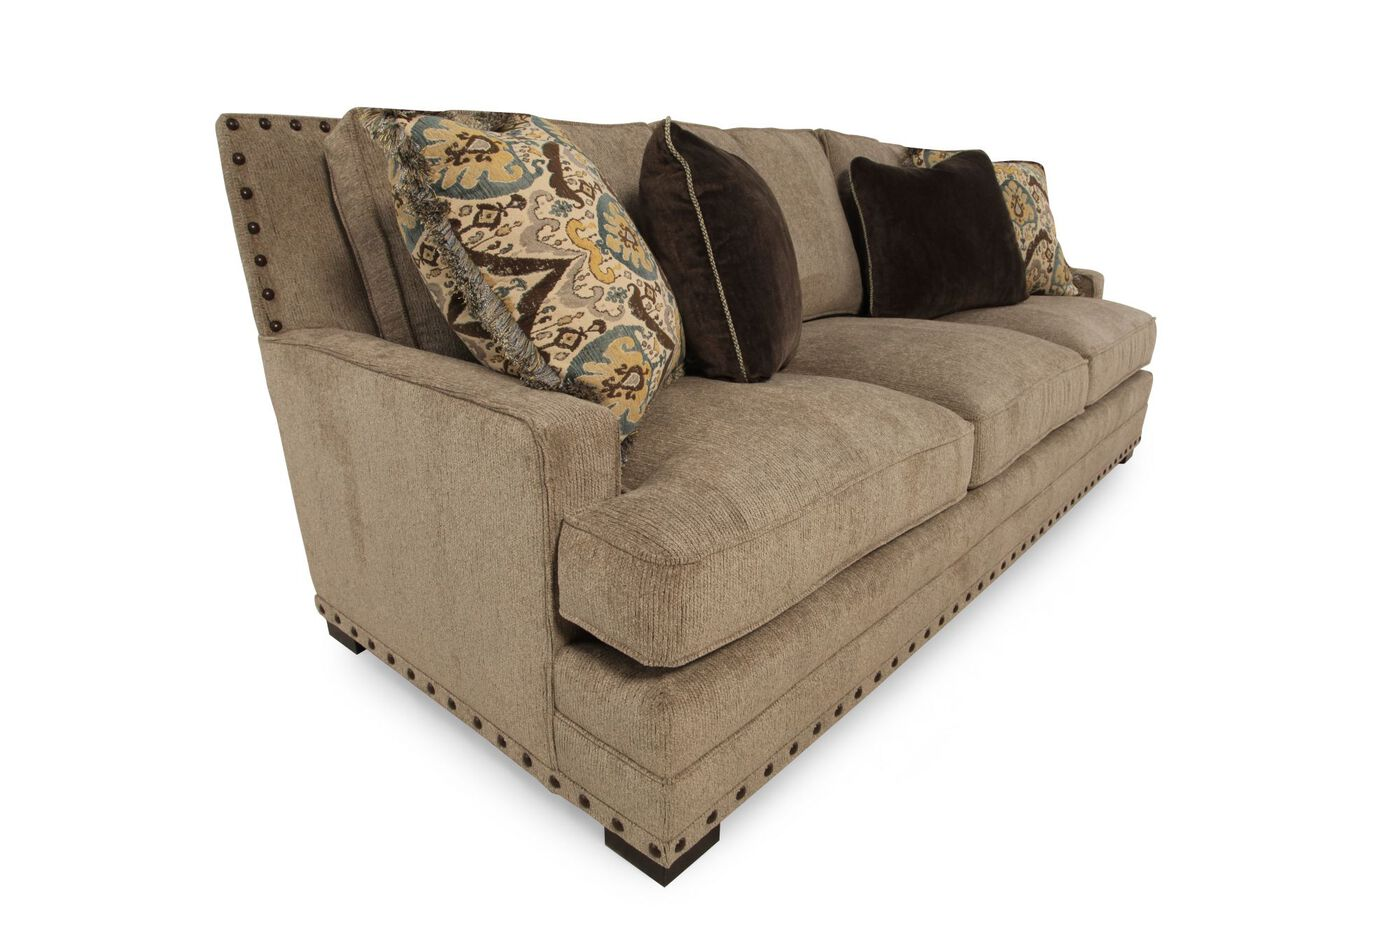 Bernhardt cantor sofa mathis brothers furniture for Where to buy bernhardt furniture online